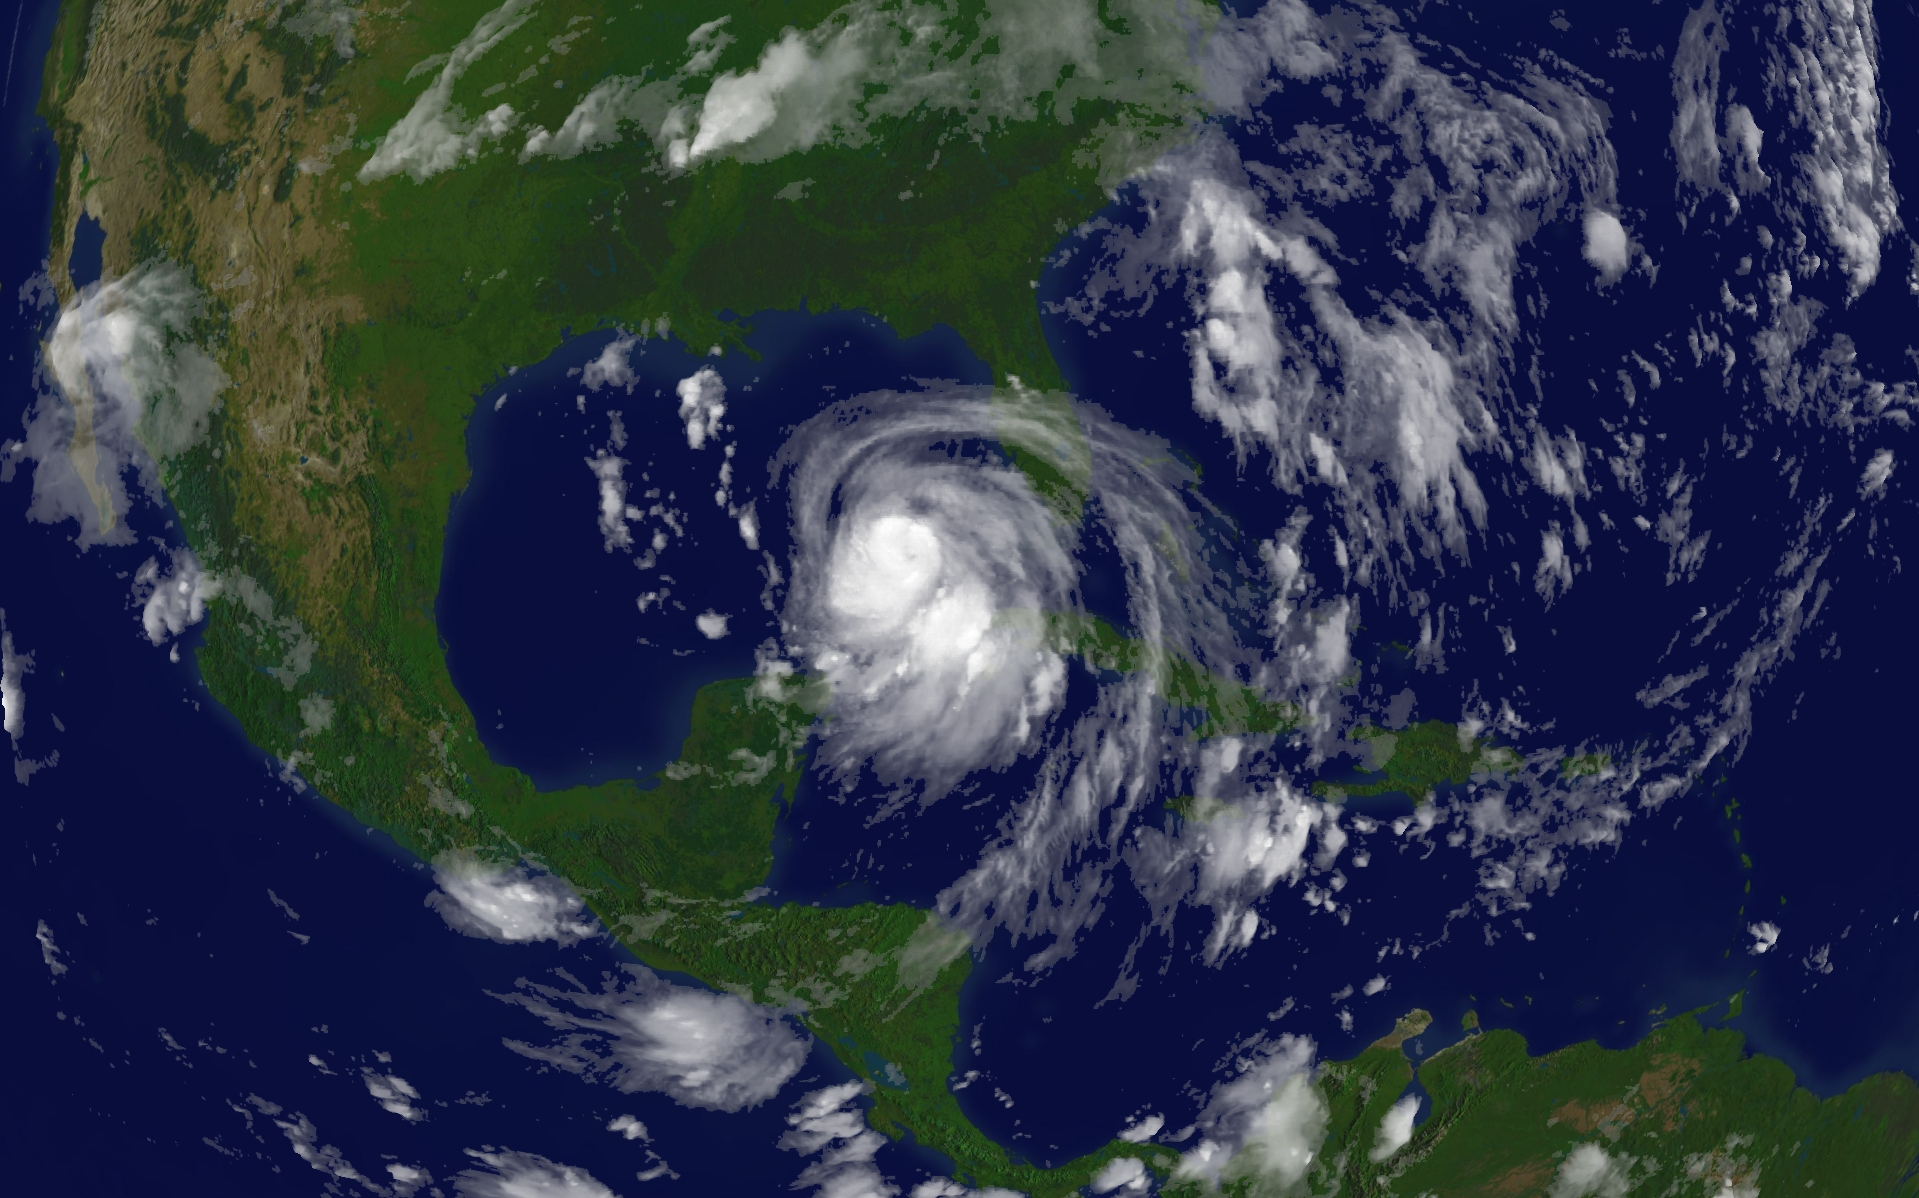 Satellite Image of Hurricane Katrina On August 27, 2005.